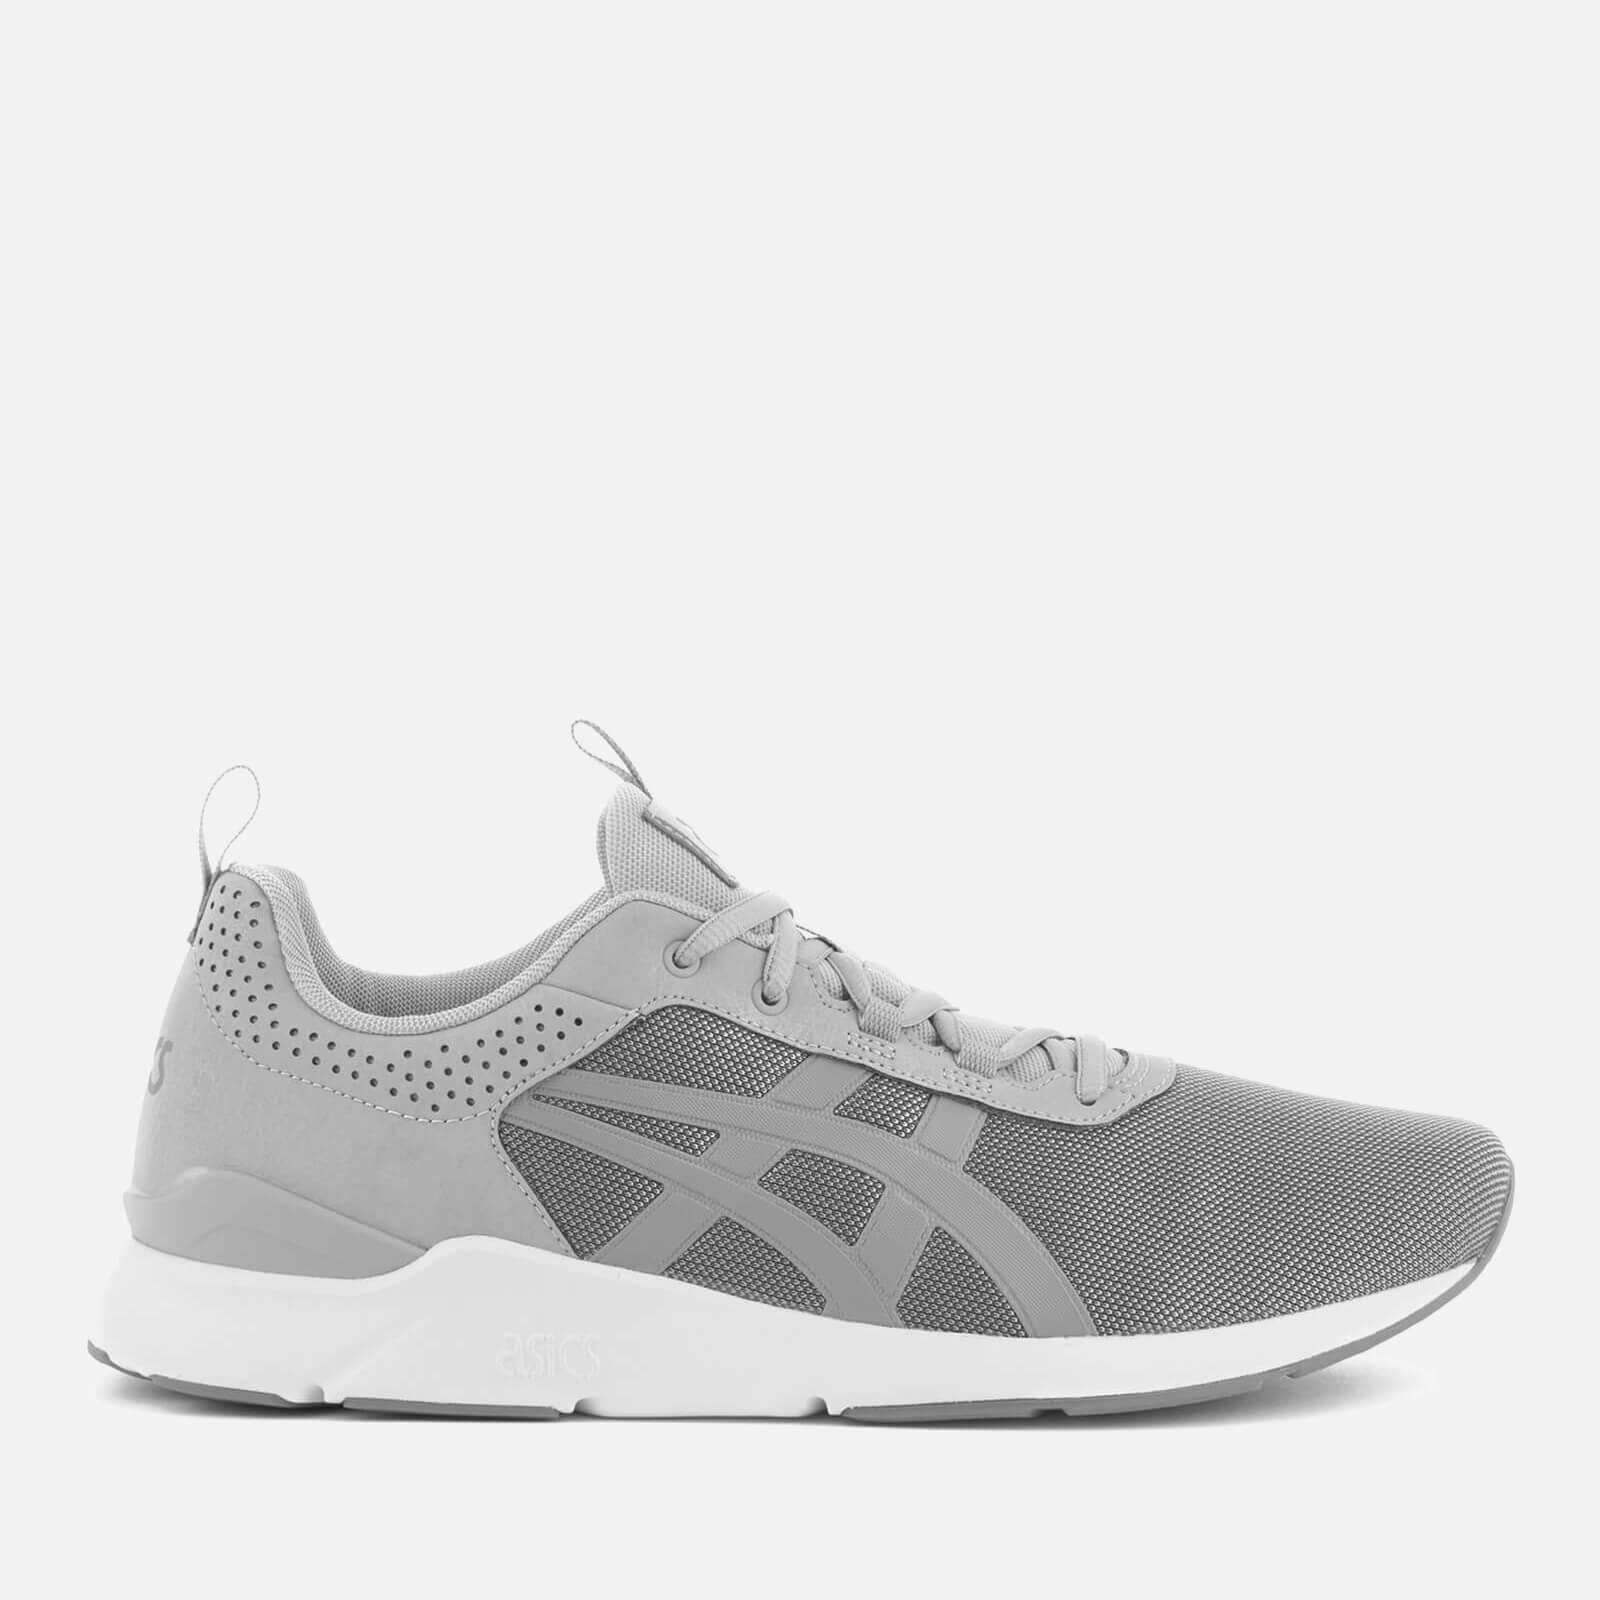 e538ecbff08e Asics Lifestyle Men s Gel-Lyte Runner Trainers - Mid Grey - Free UK  Delivery over £50